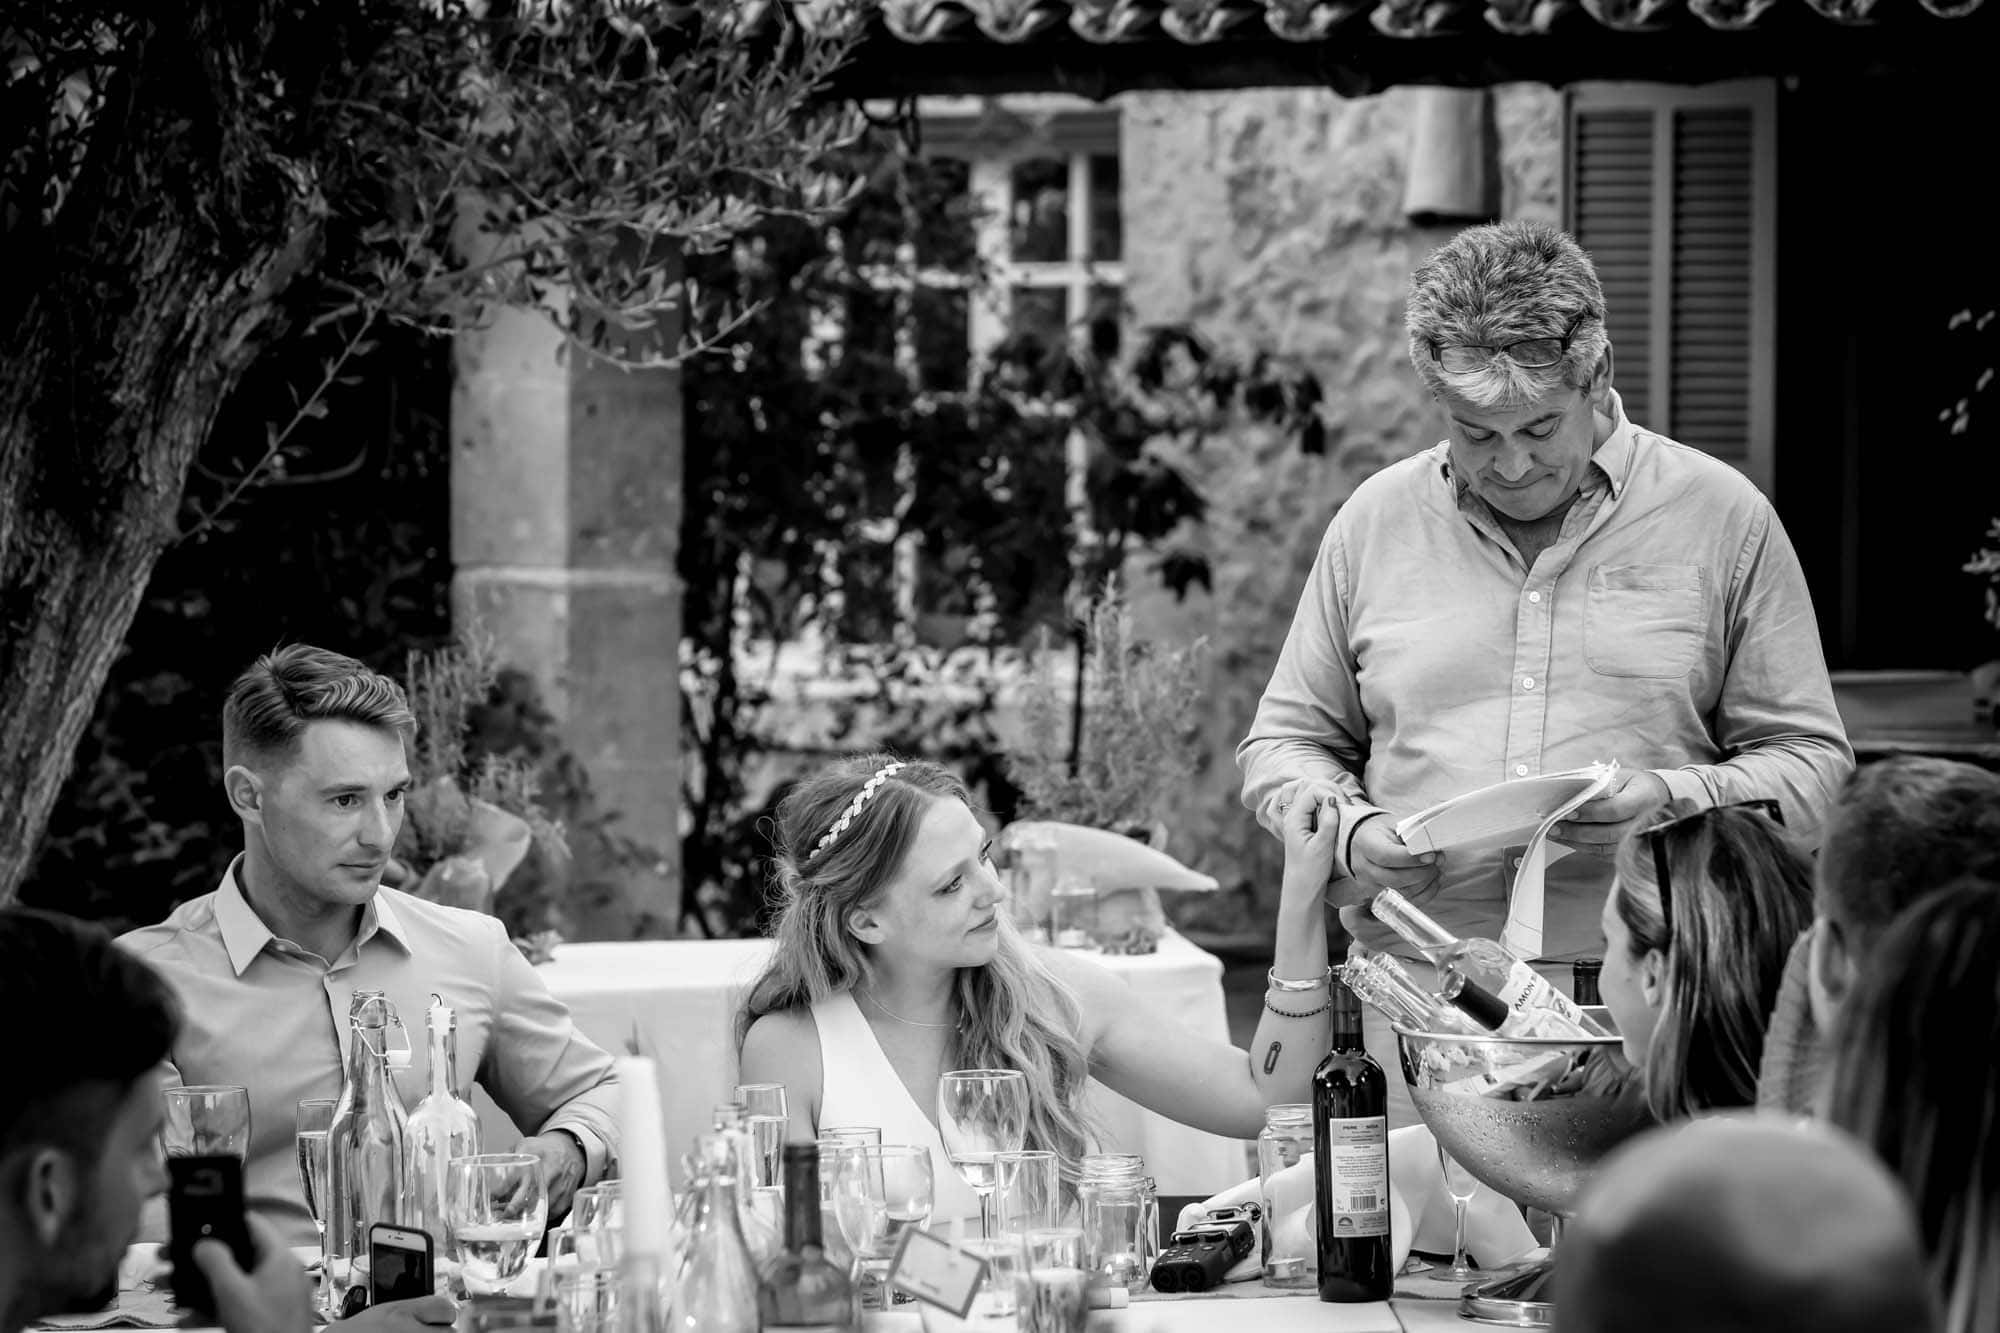 Cathy touches her dad's arm during his wedding speech by Mallorca wedding photographer Graham Warrellow